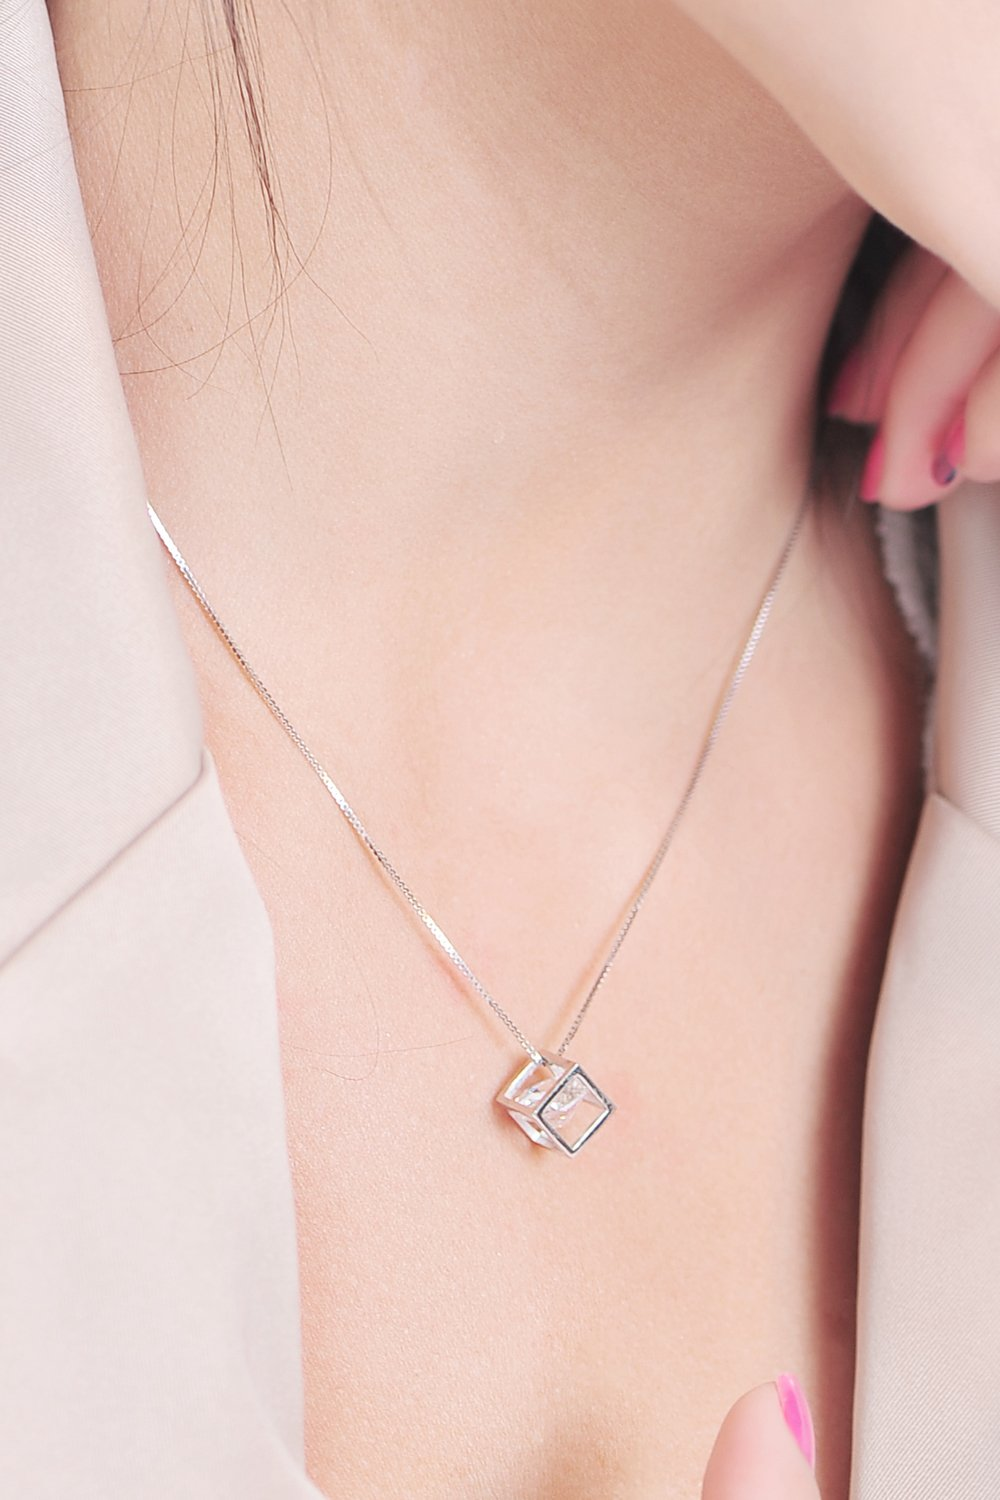 Thai Love Your Unique Cube Clavicle Chain Necklace Pendant Women Girls Short s925 Silver Accessories Women Gift Gift by PAGIPEN